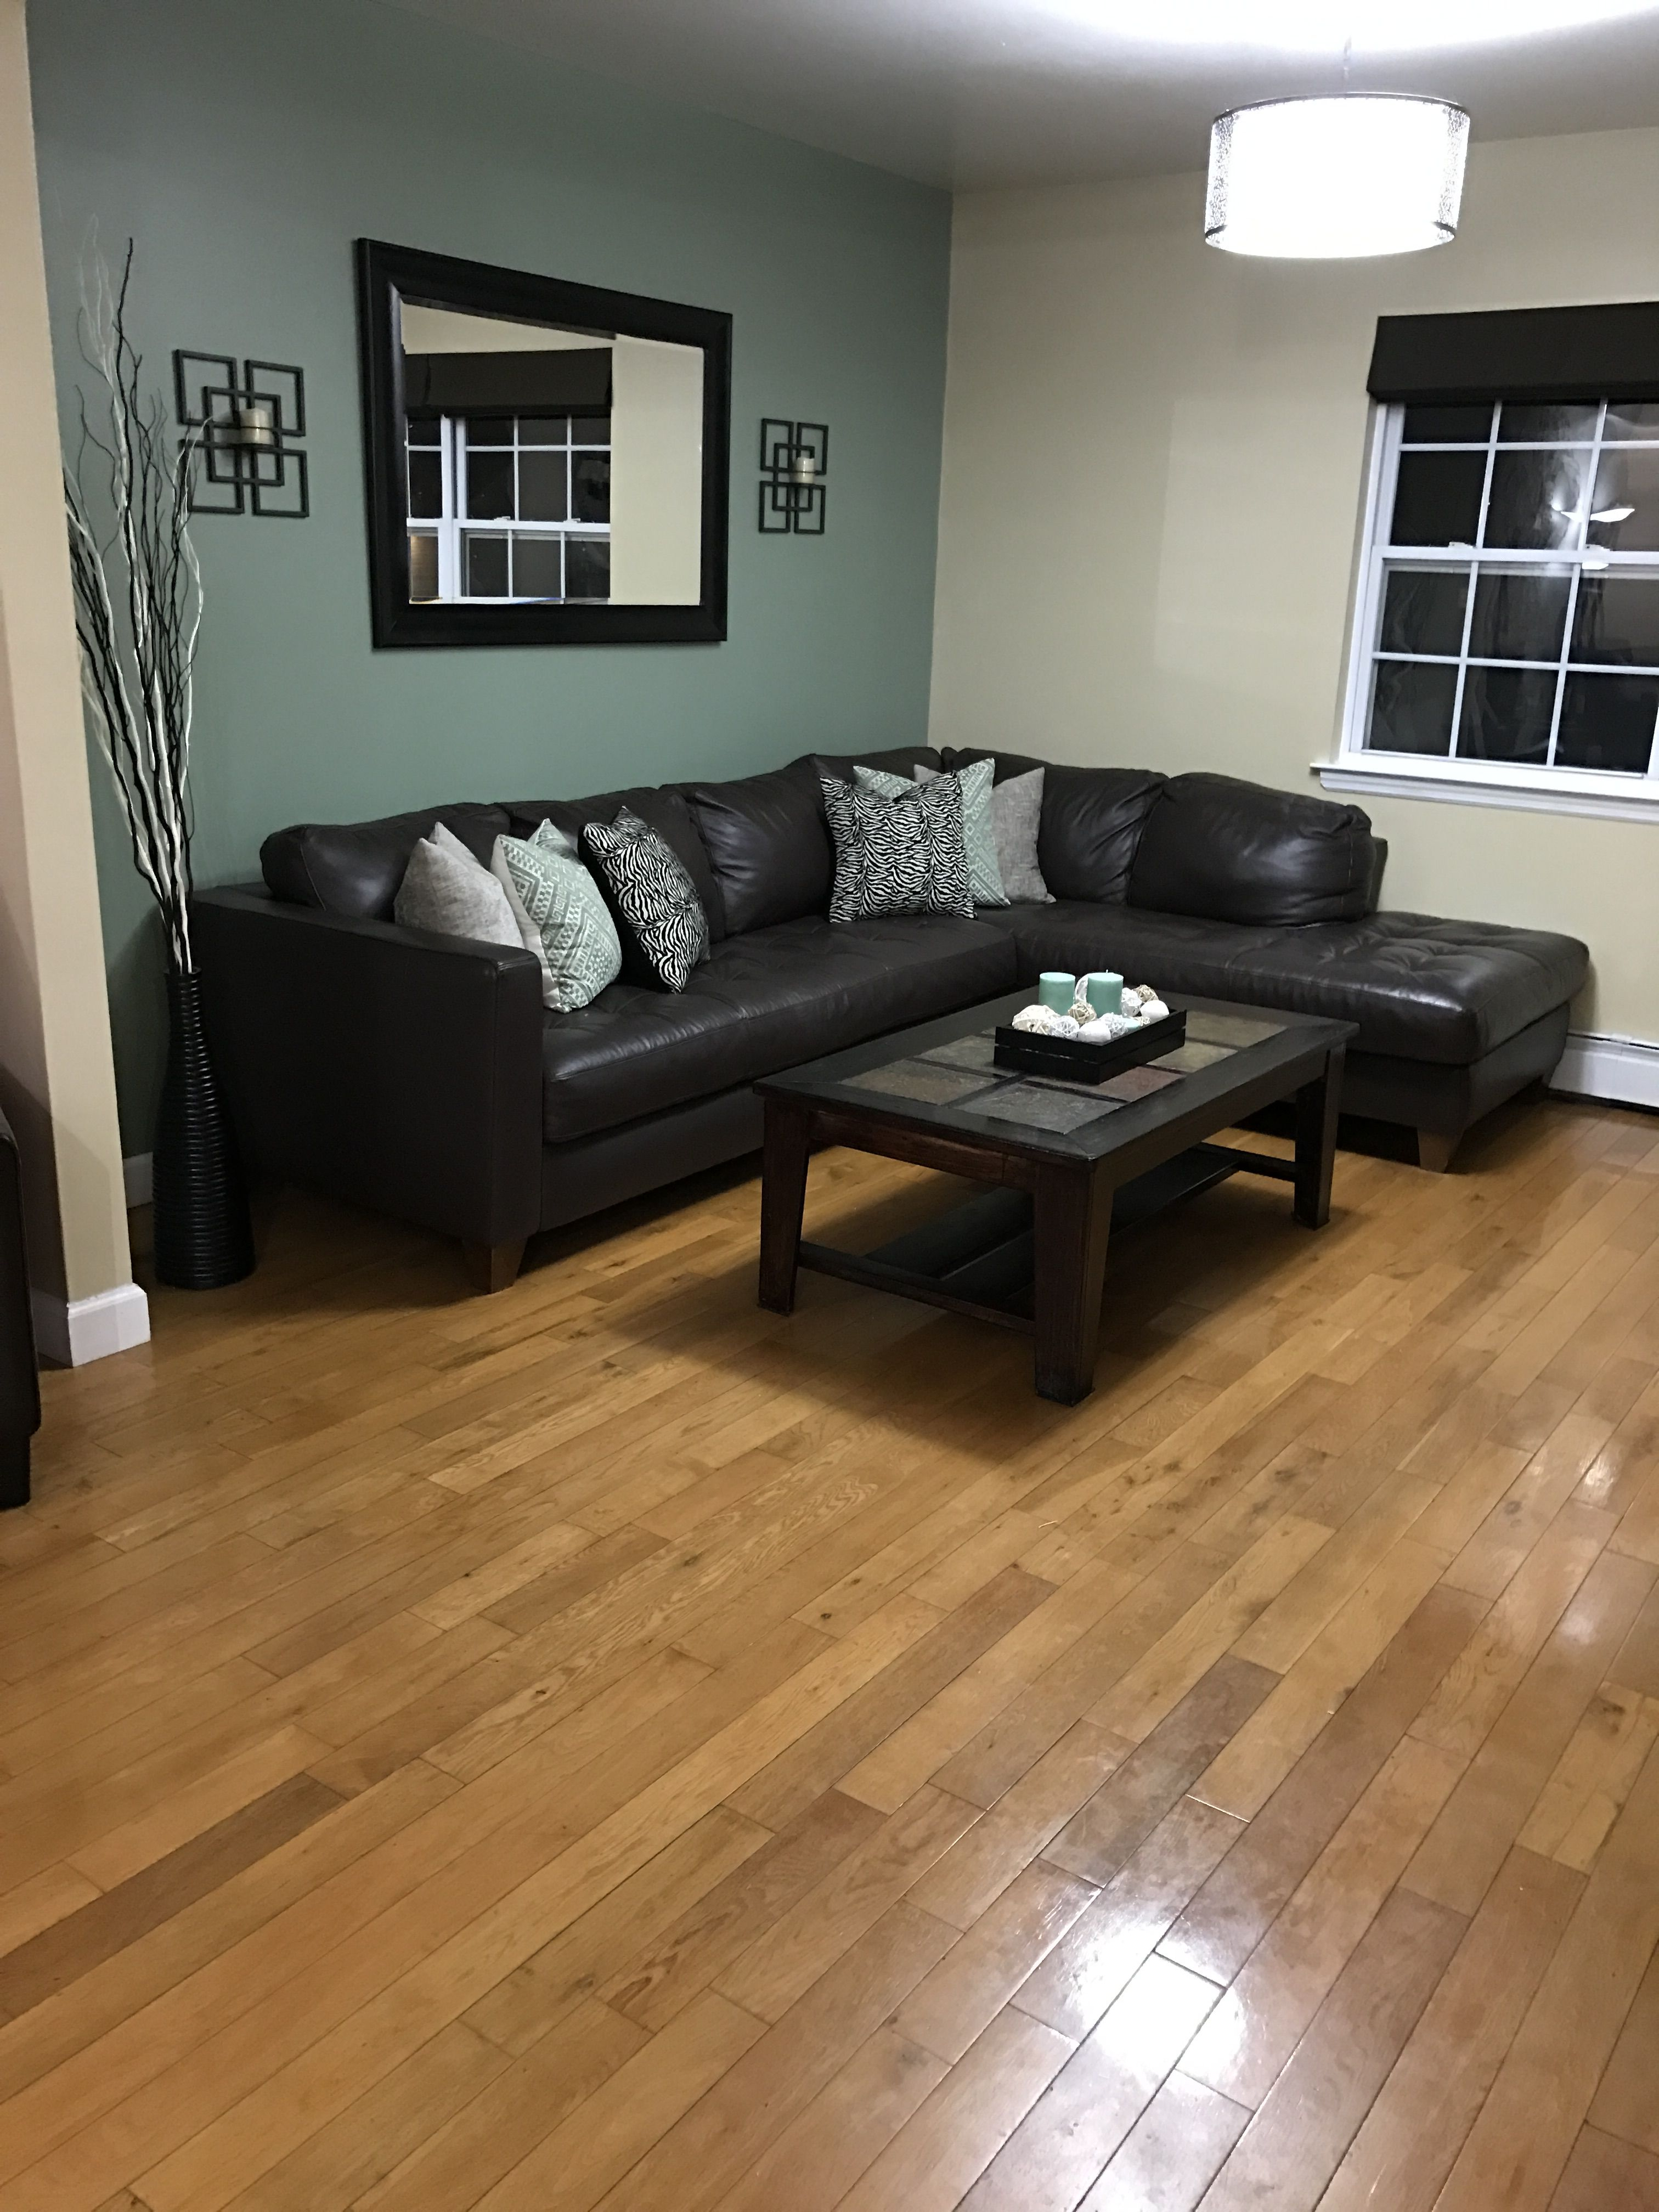 I Love The Finished Product That Sage Green Accent Wall Is Sooo Relaxing Accent Walls In Living Room Green Walls Living Room Living Room Green #sage #walls #living #room